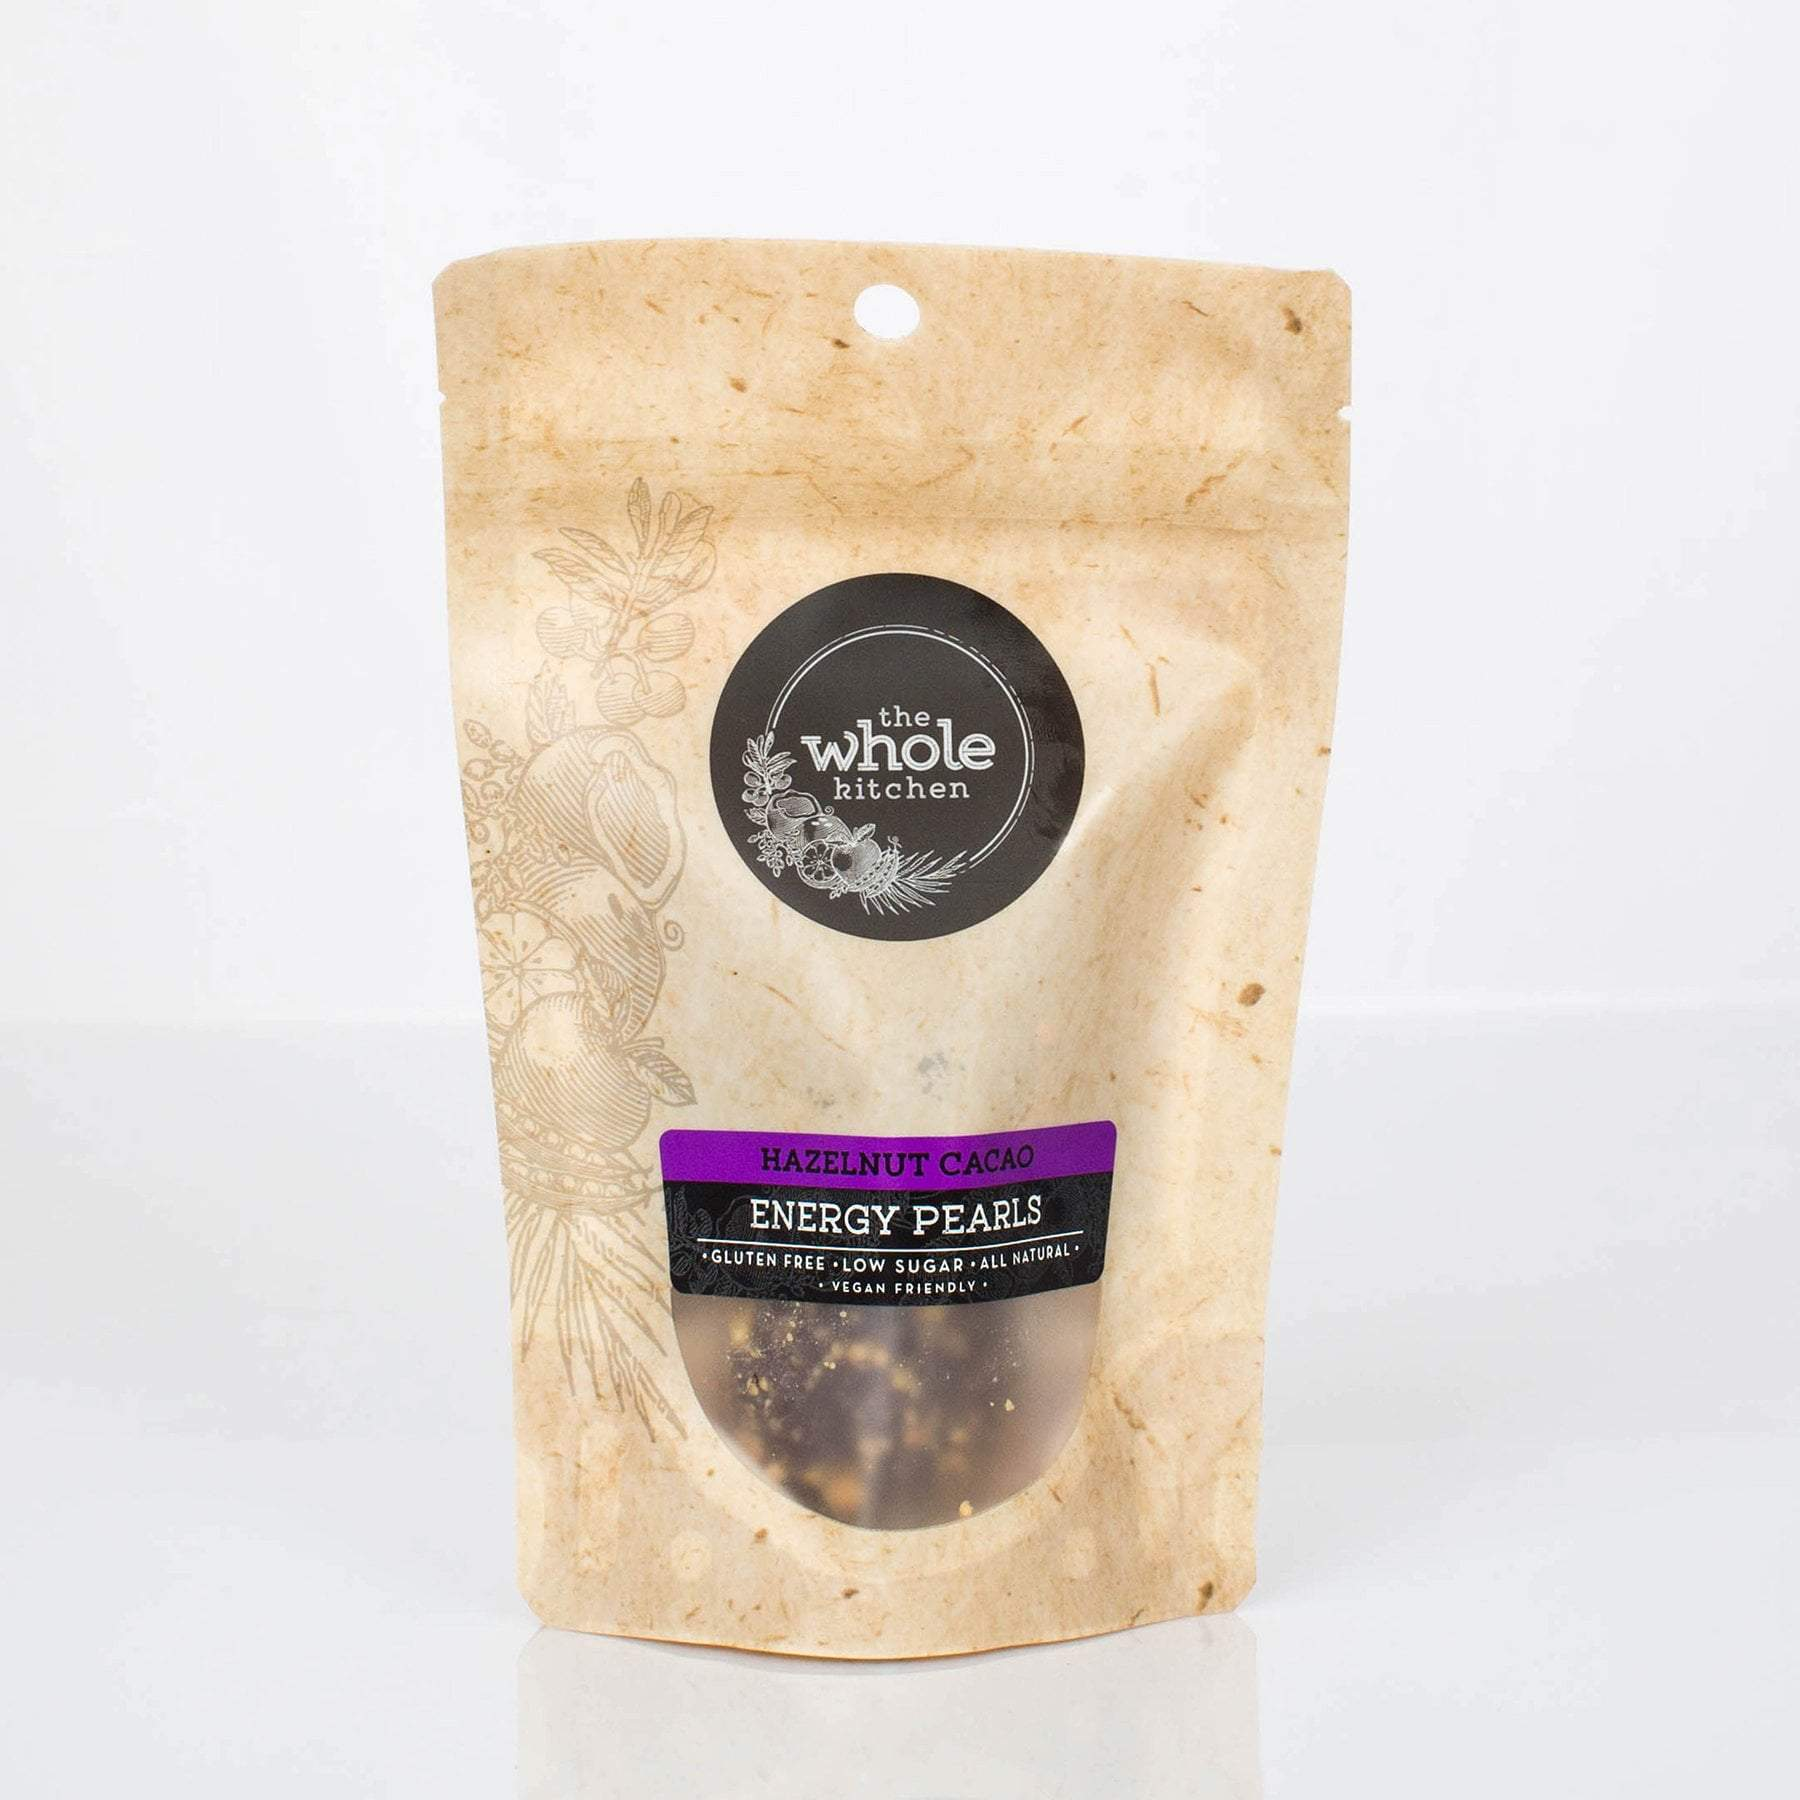 The Whole Kitchen Hazelnut Cacao Energy Pearls (2 pack) To Go > Ready to Eat